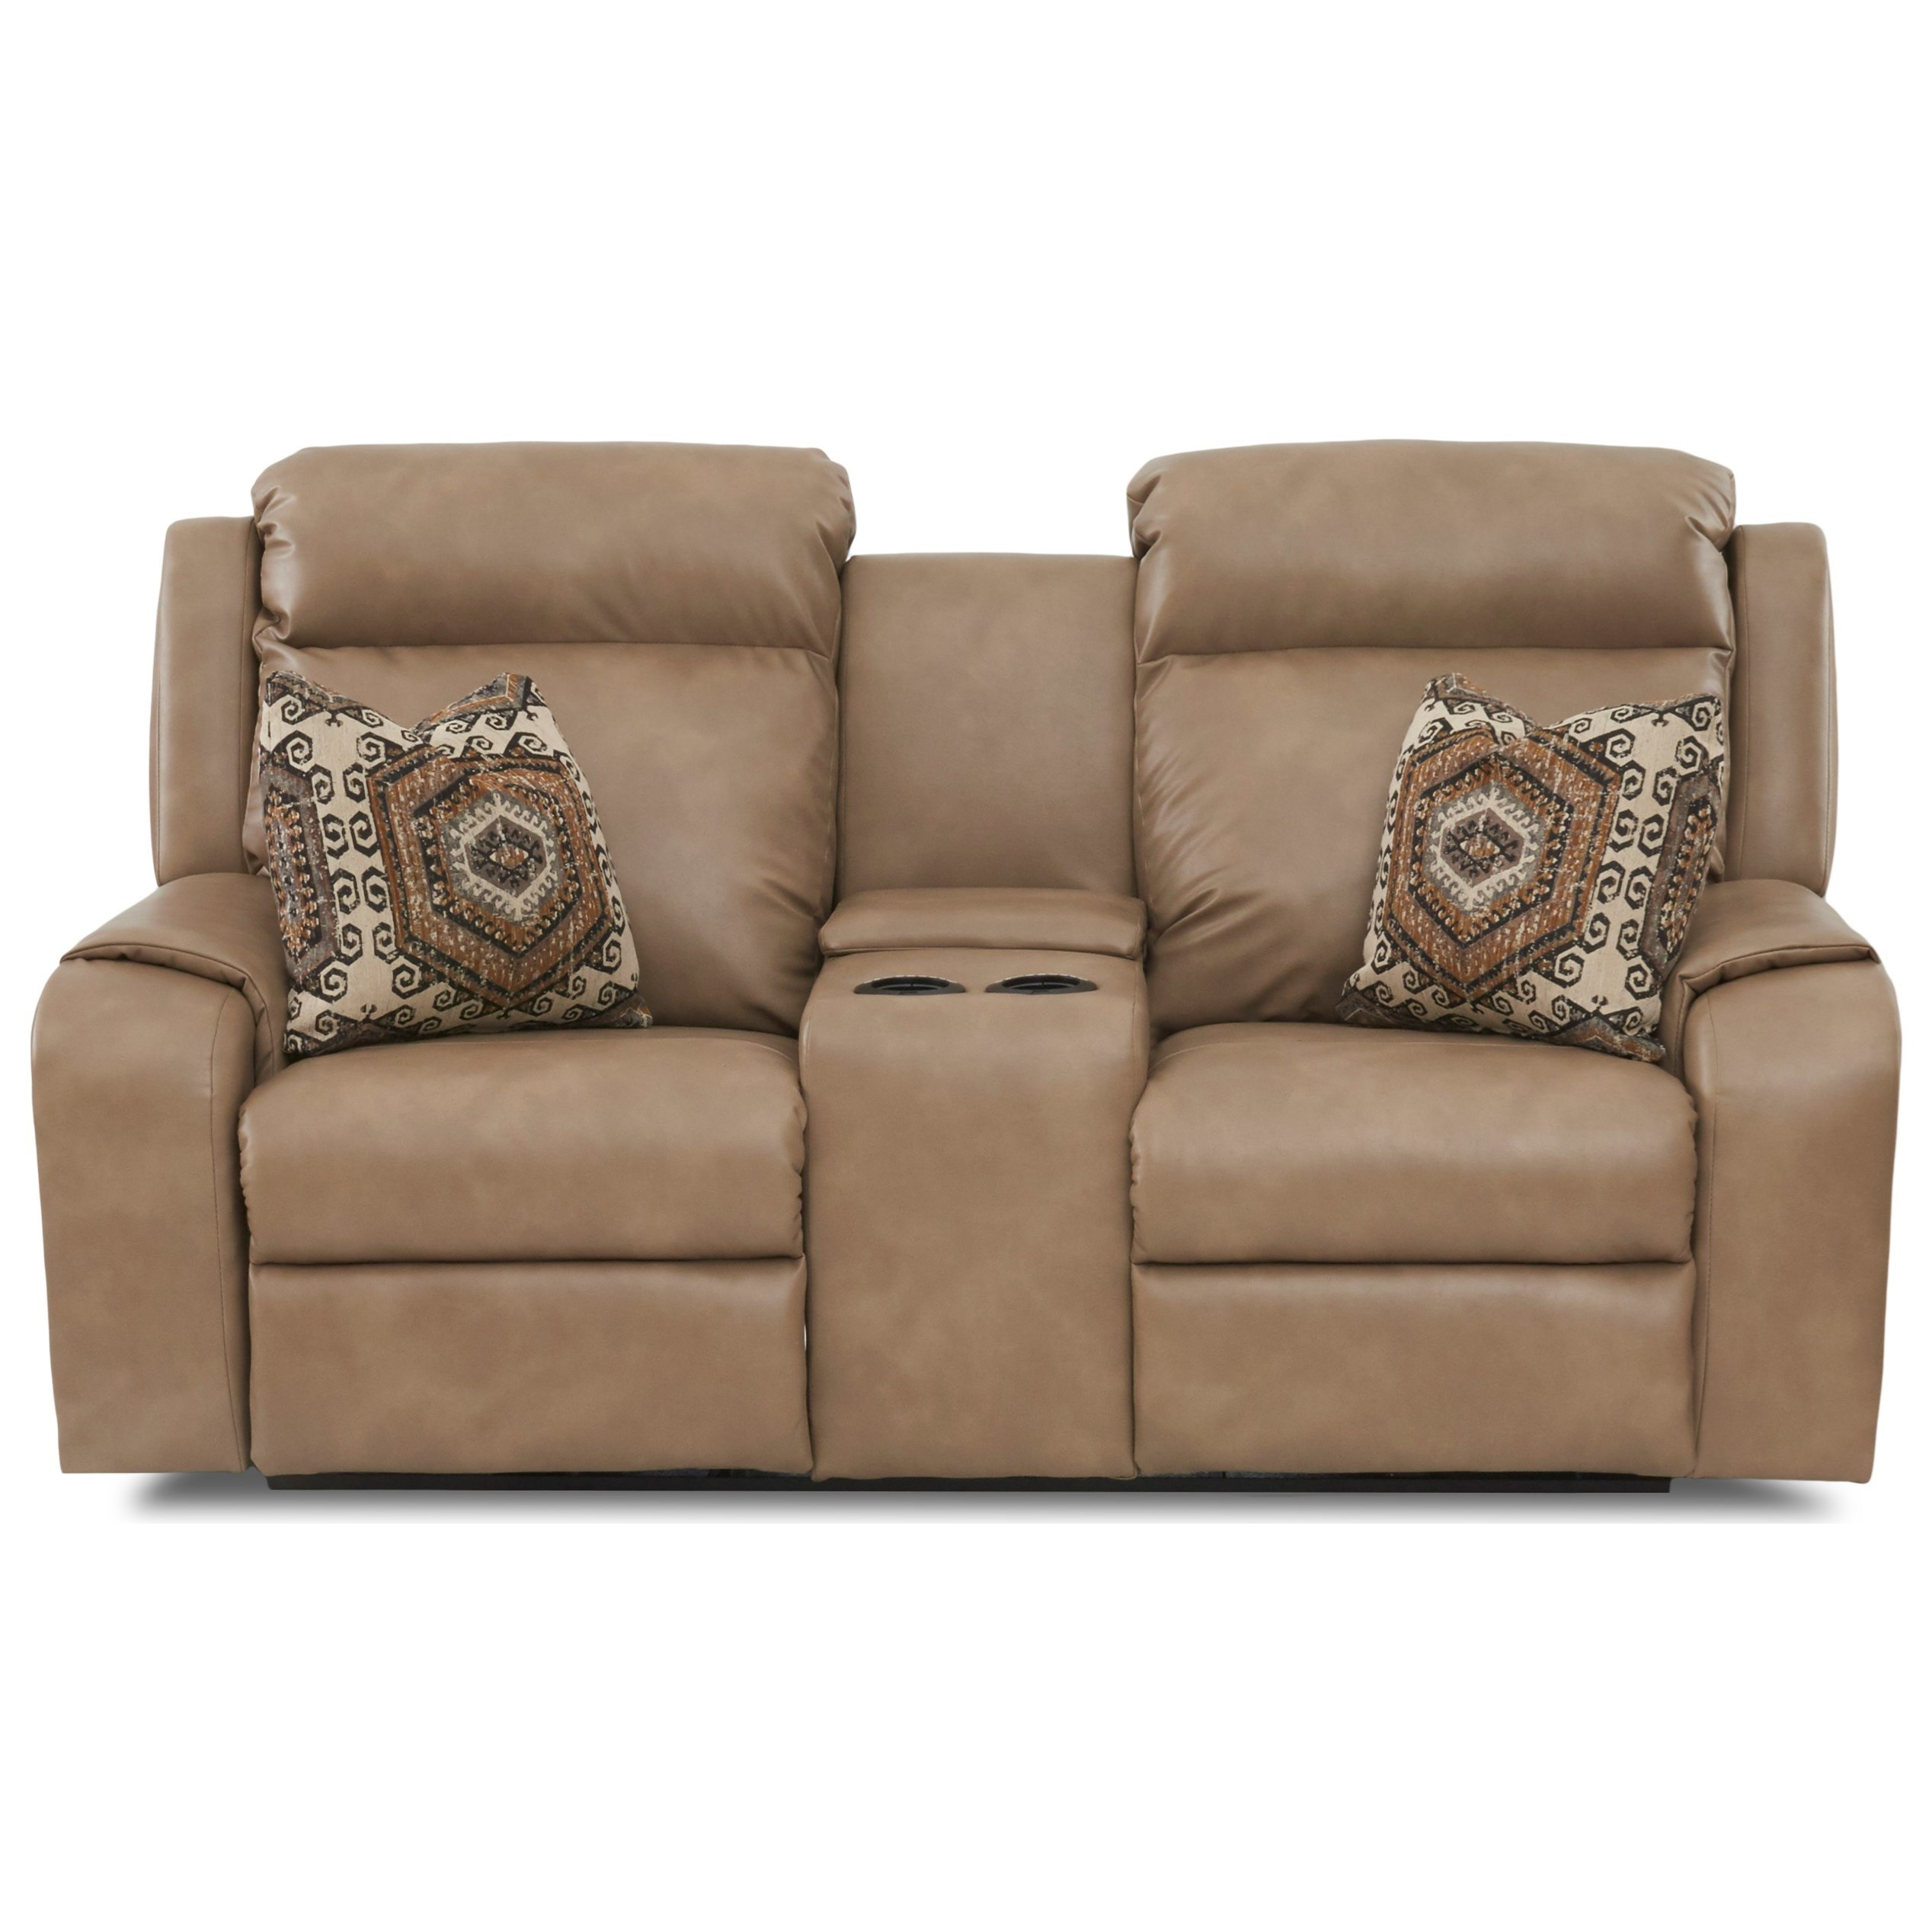 pomona sofa the most comfortable klaussner merlin power console reclining loveseat with